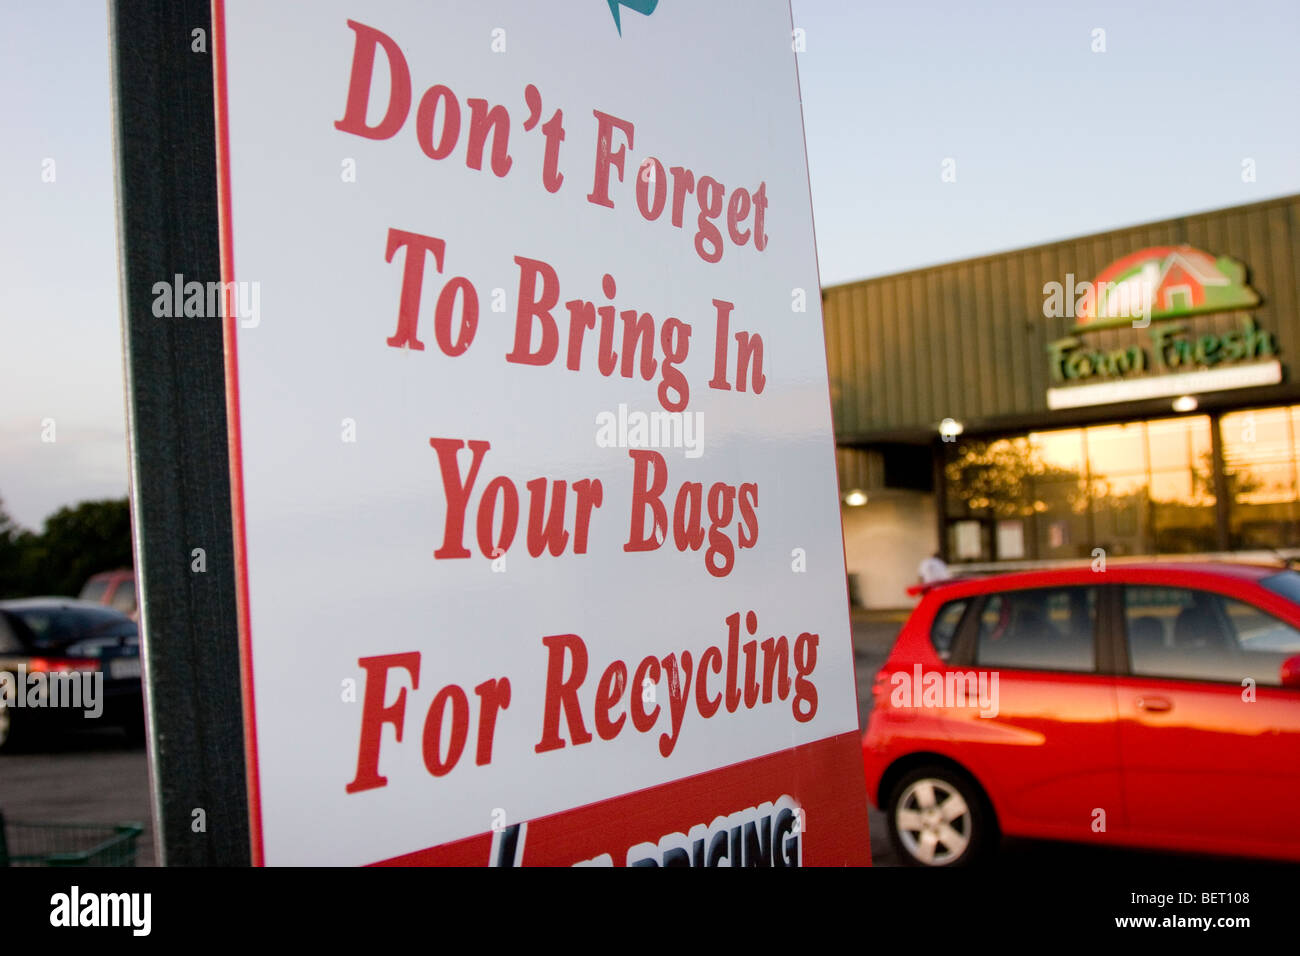 Grocery store parking lot sign reminding shoppers to bring bags for recycling - Stock Image